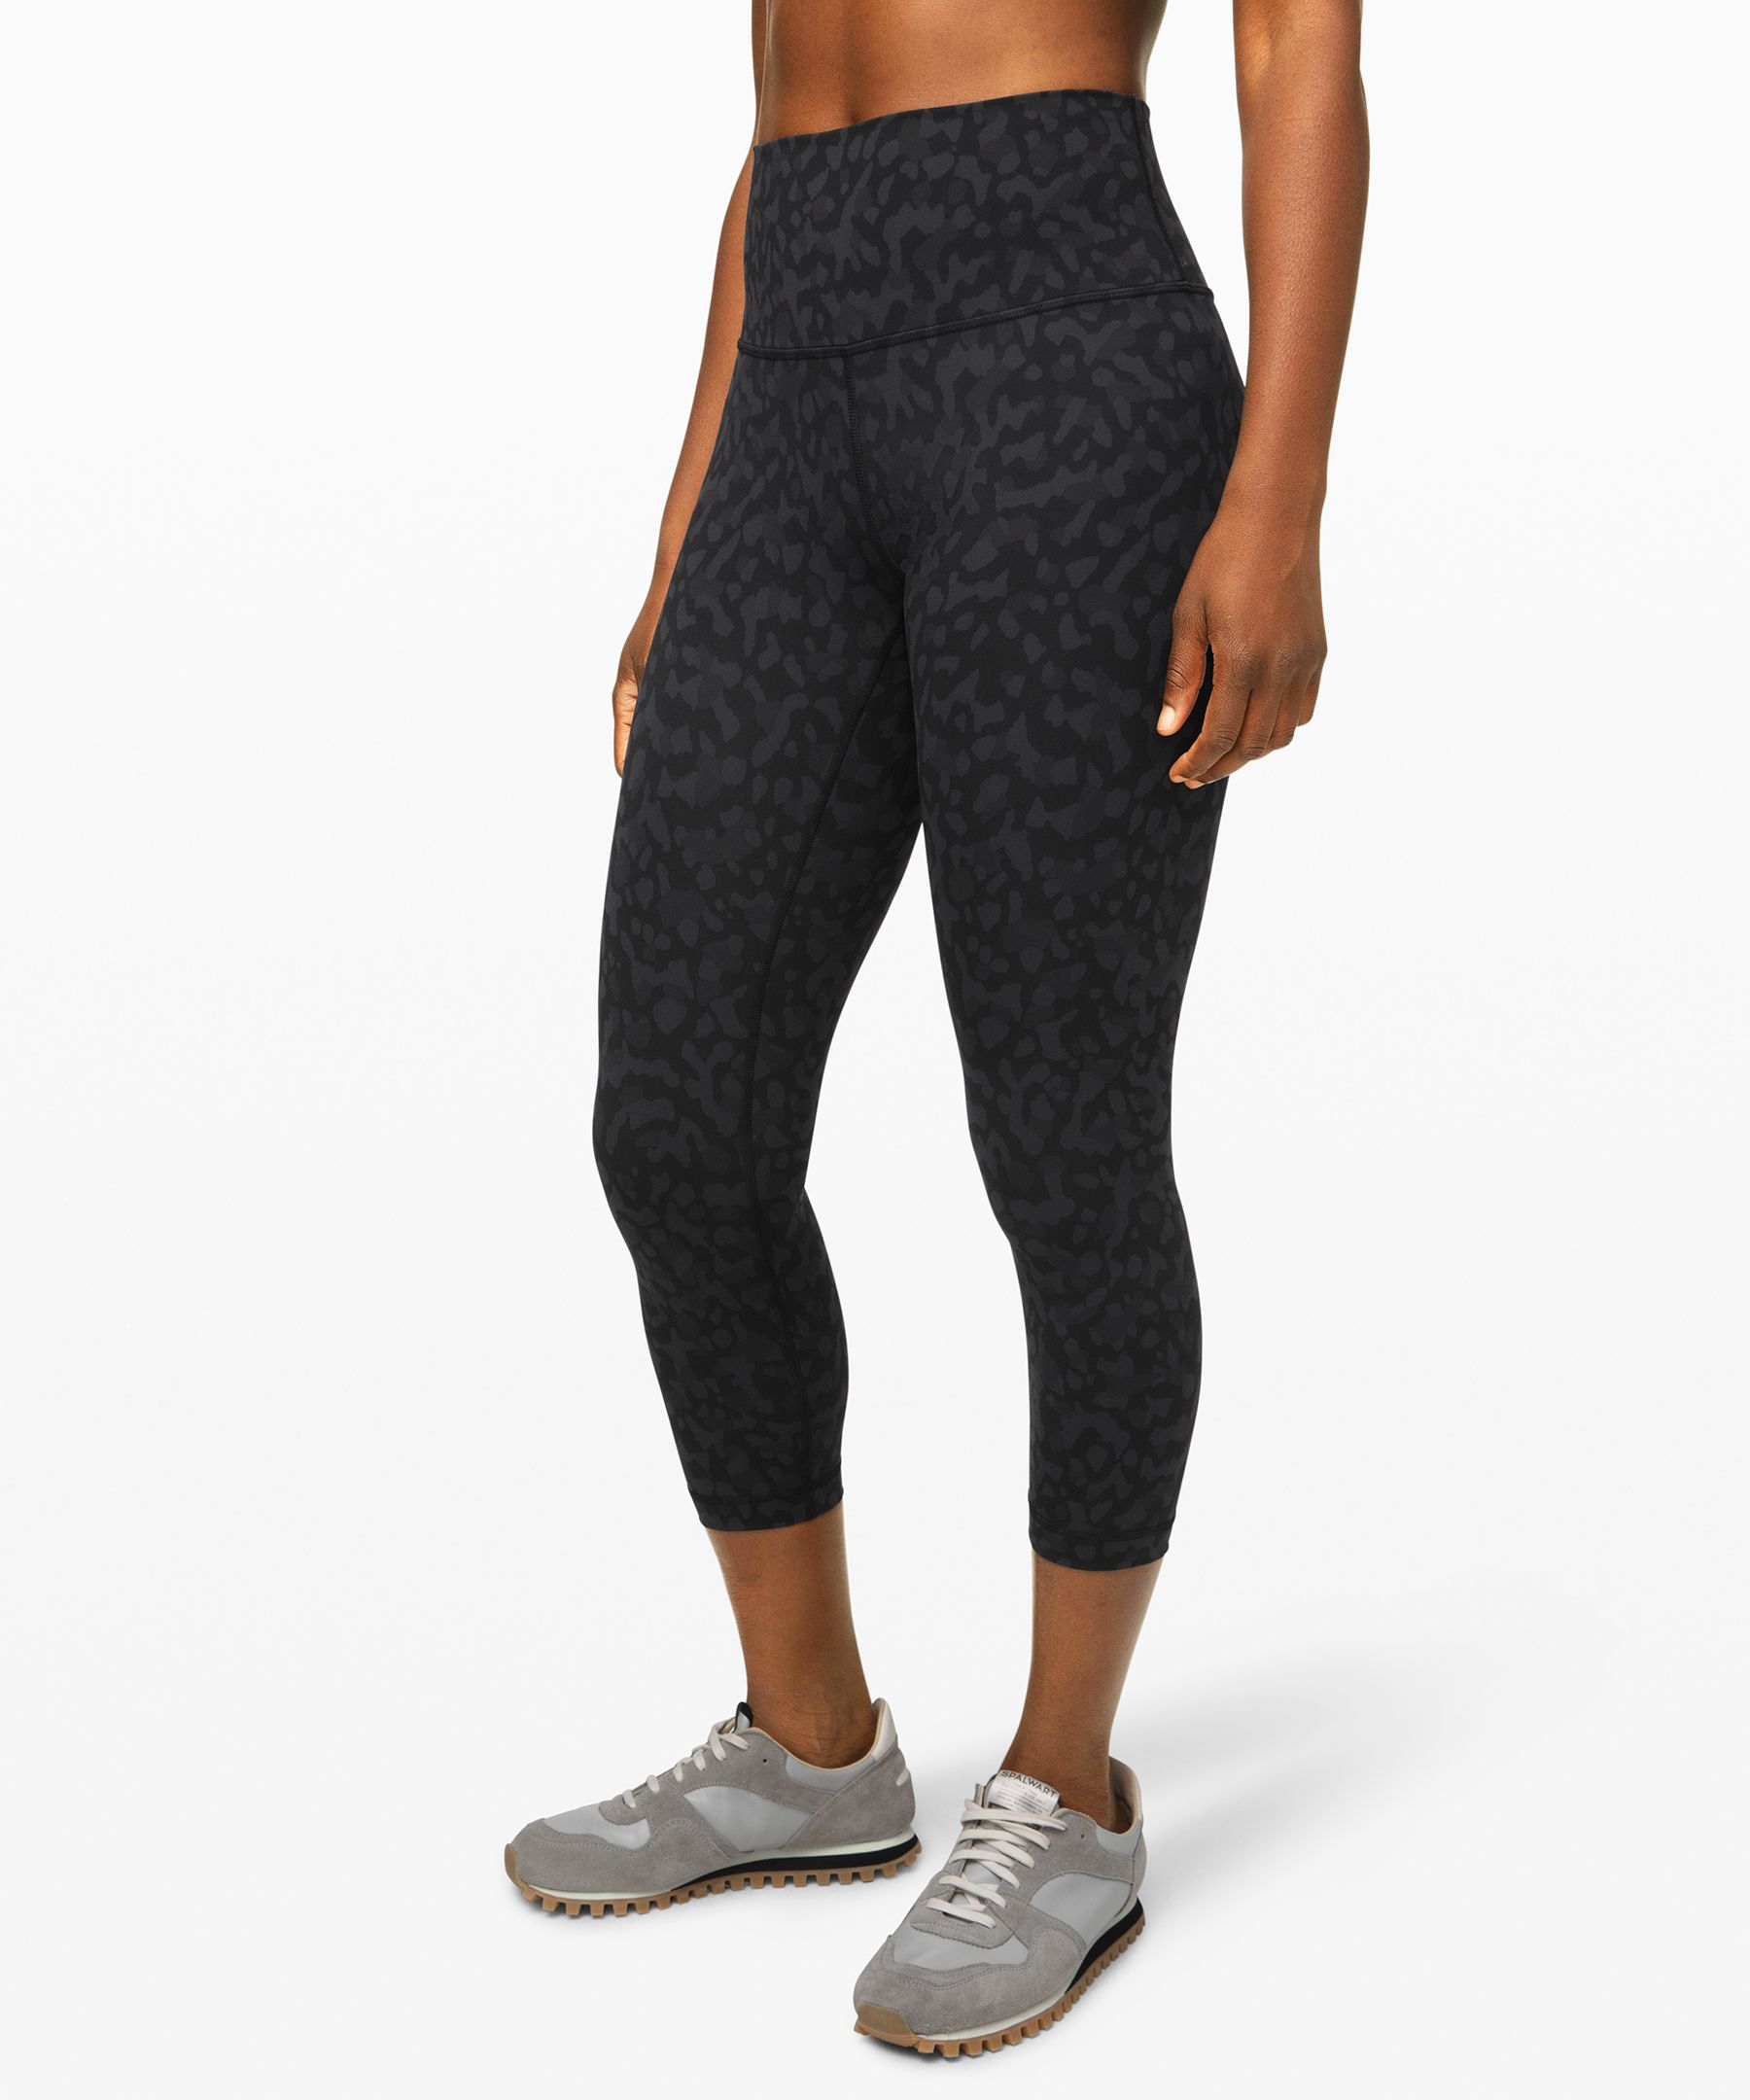 Wunder Under Crop High-Rise *Full-On Luxtreme 23